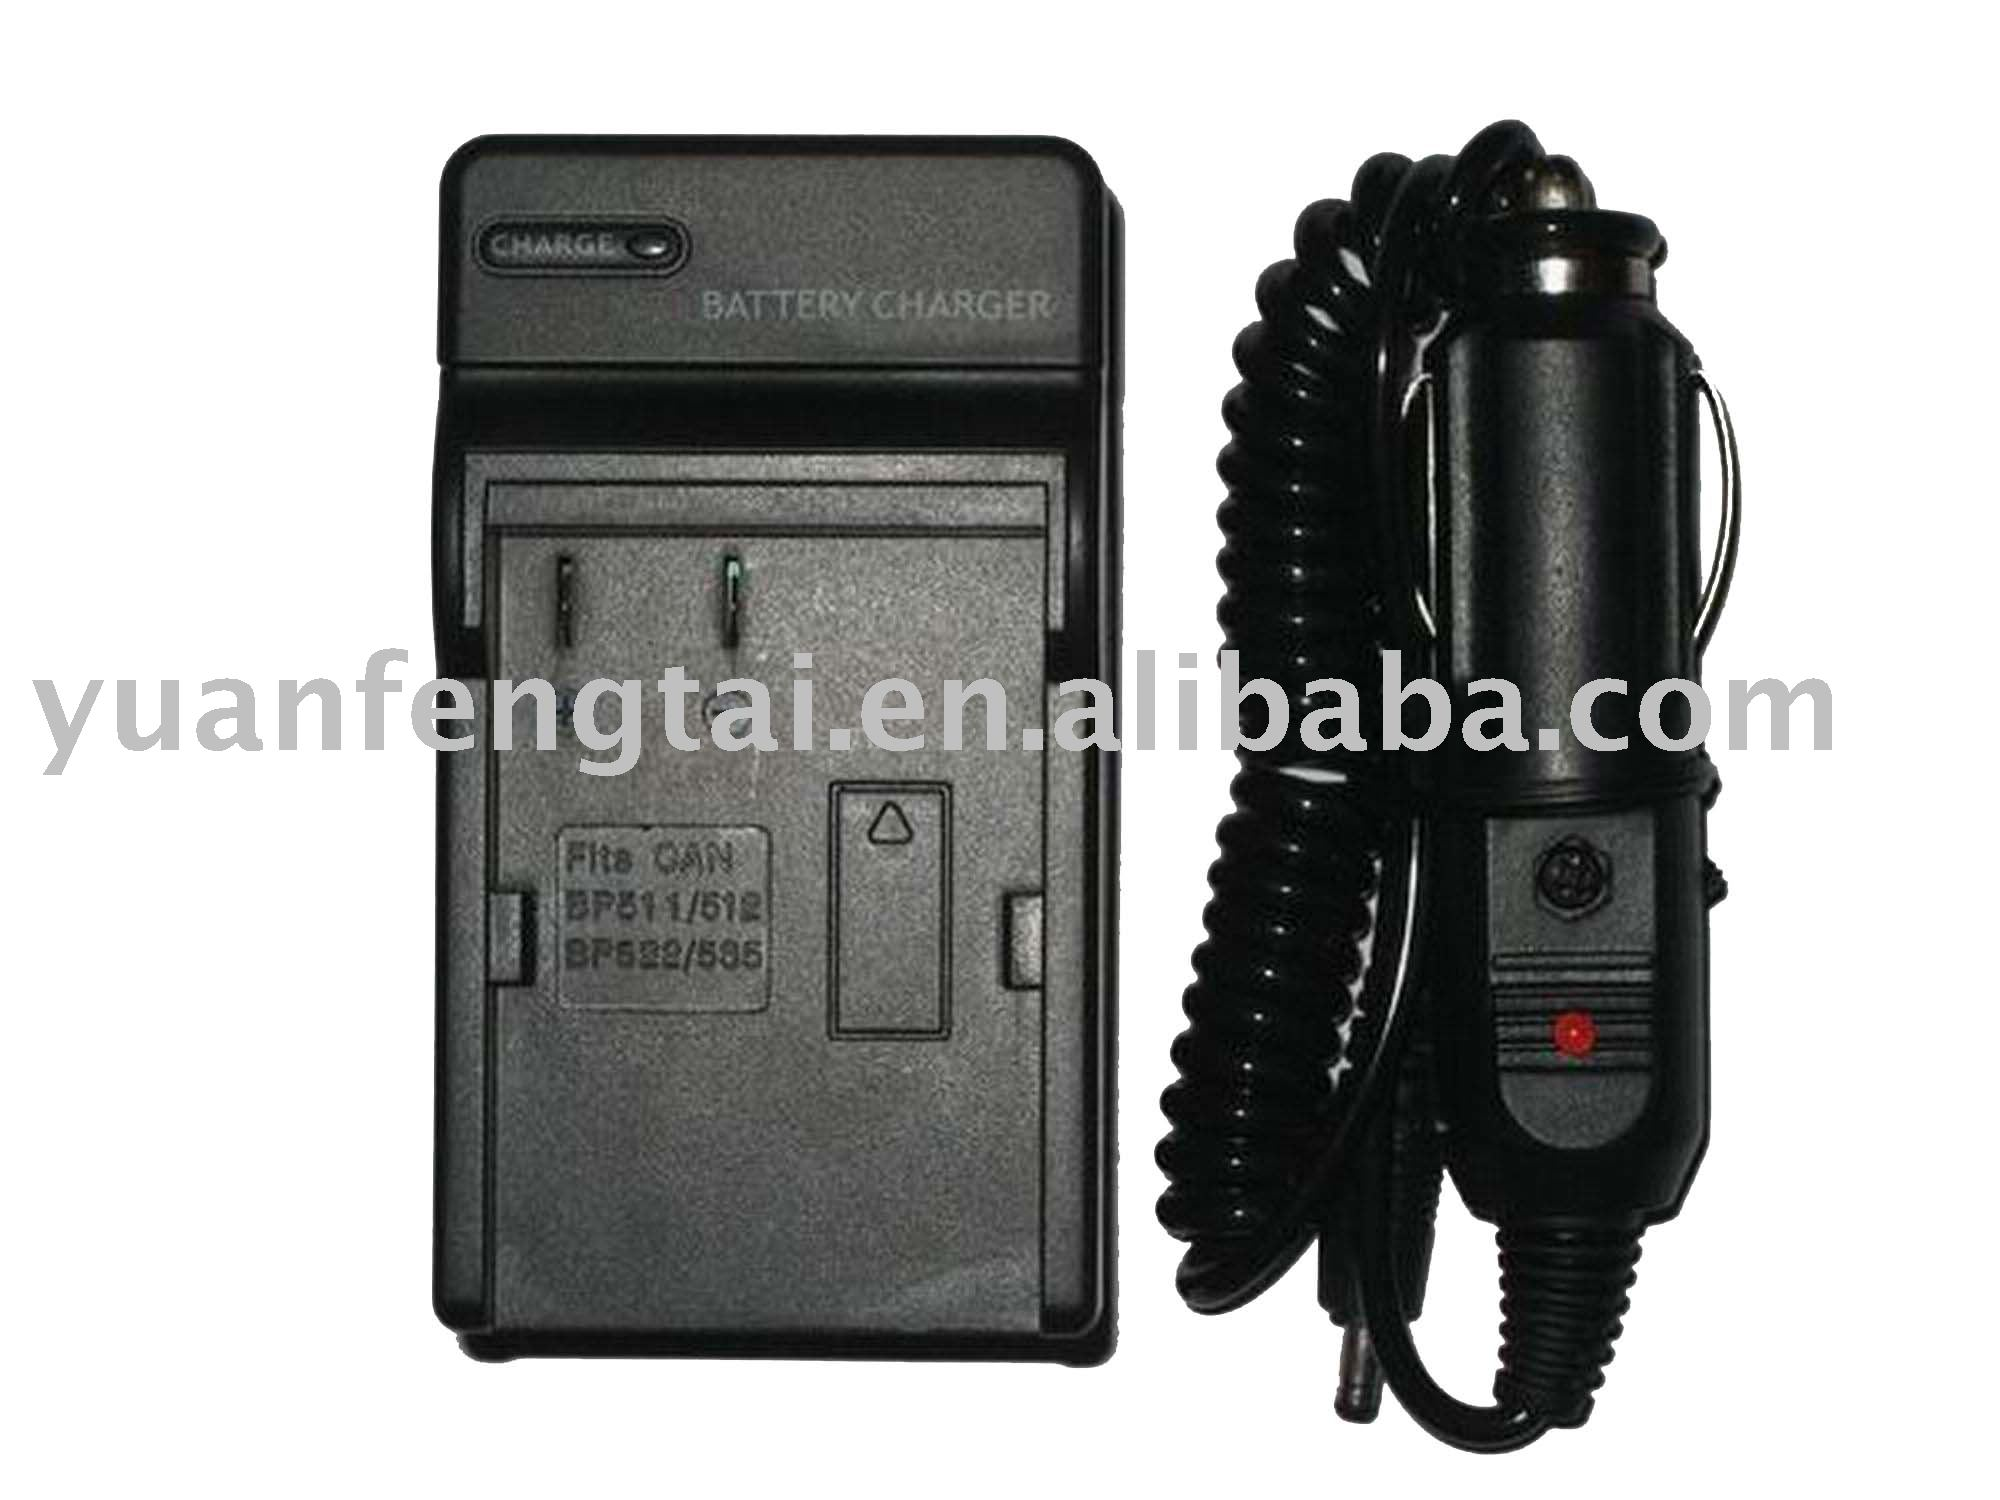 Digital Camera Battery Charger for Kyocera BP-1000S